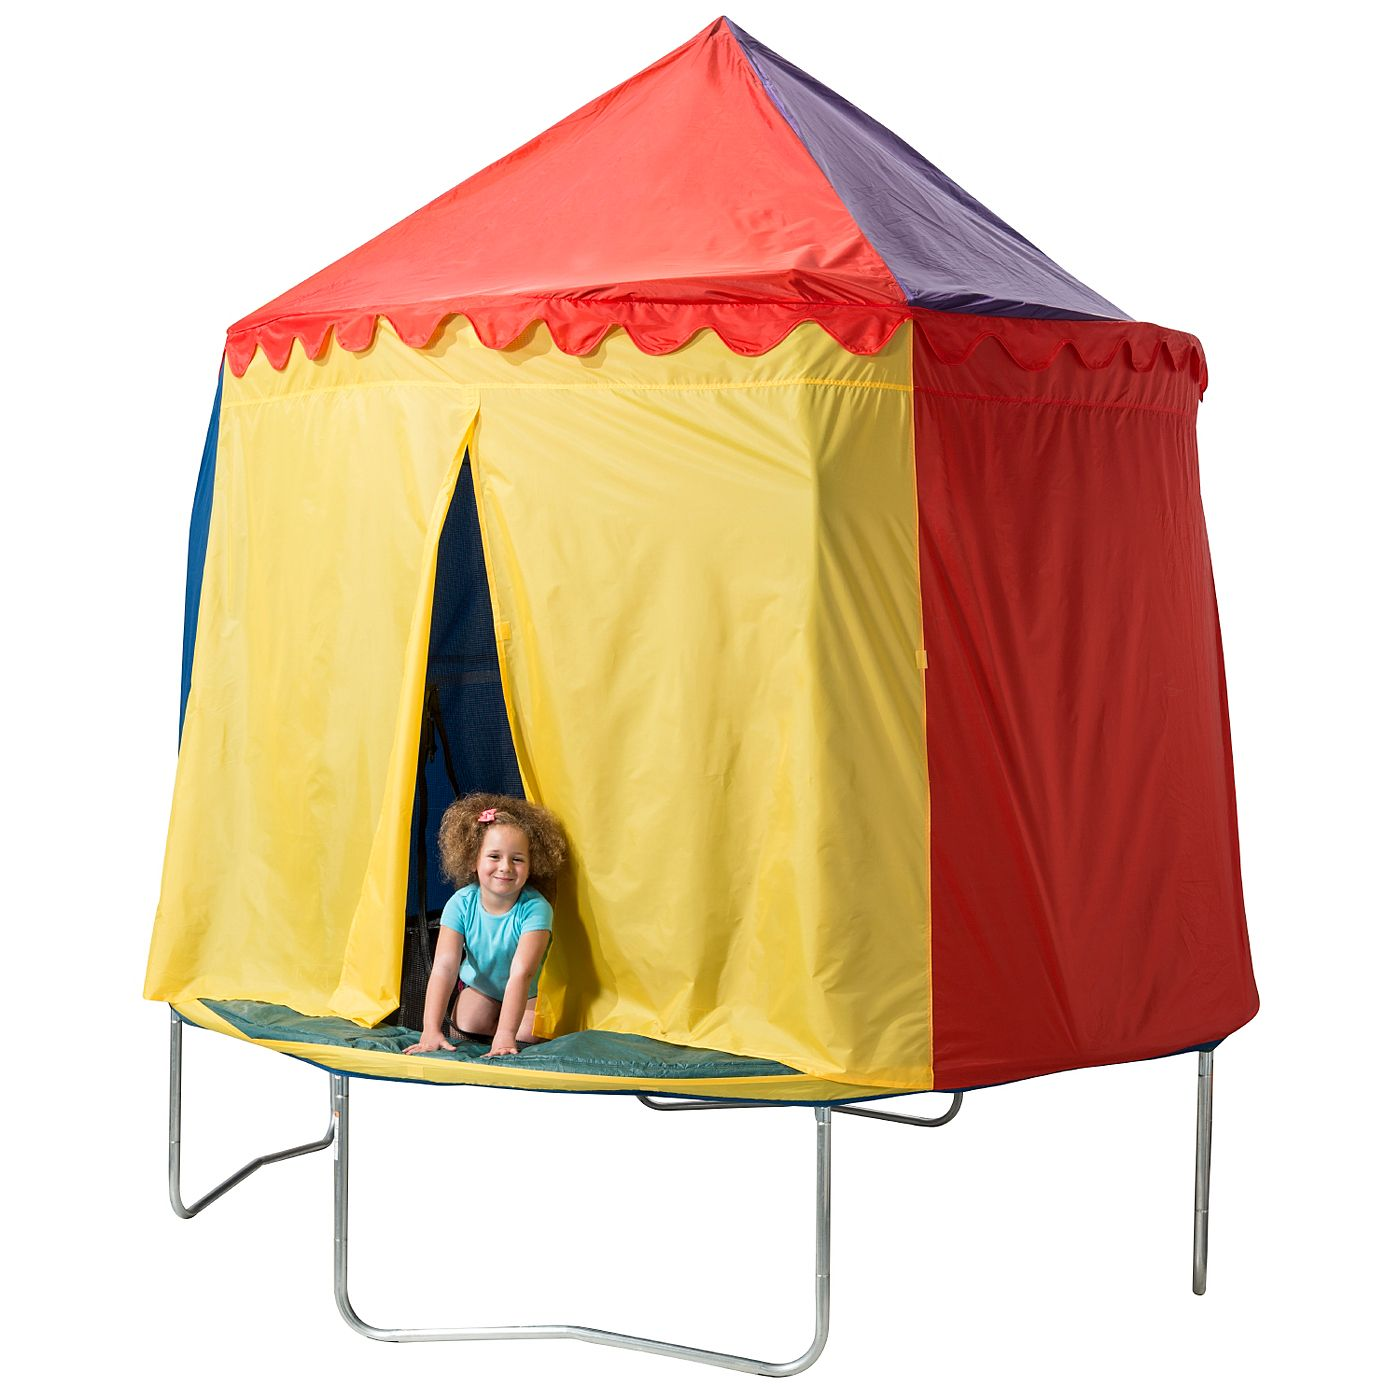 JumpKing Circus Tent Trampoline Cover - 10ft